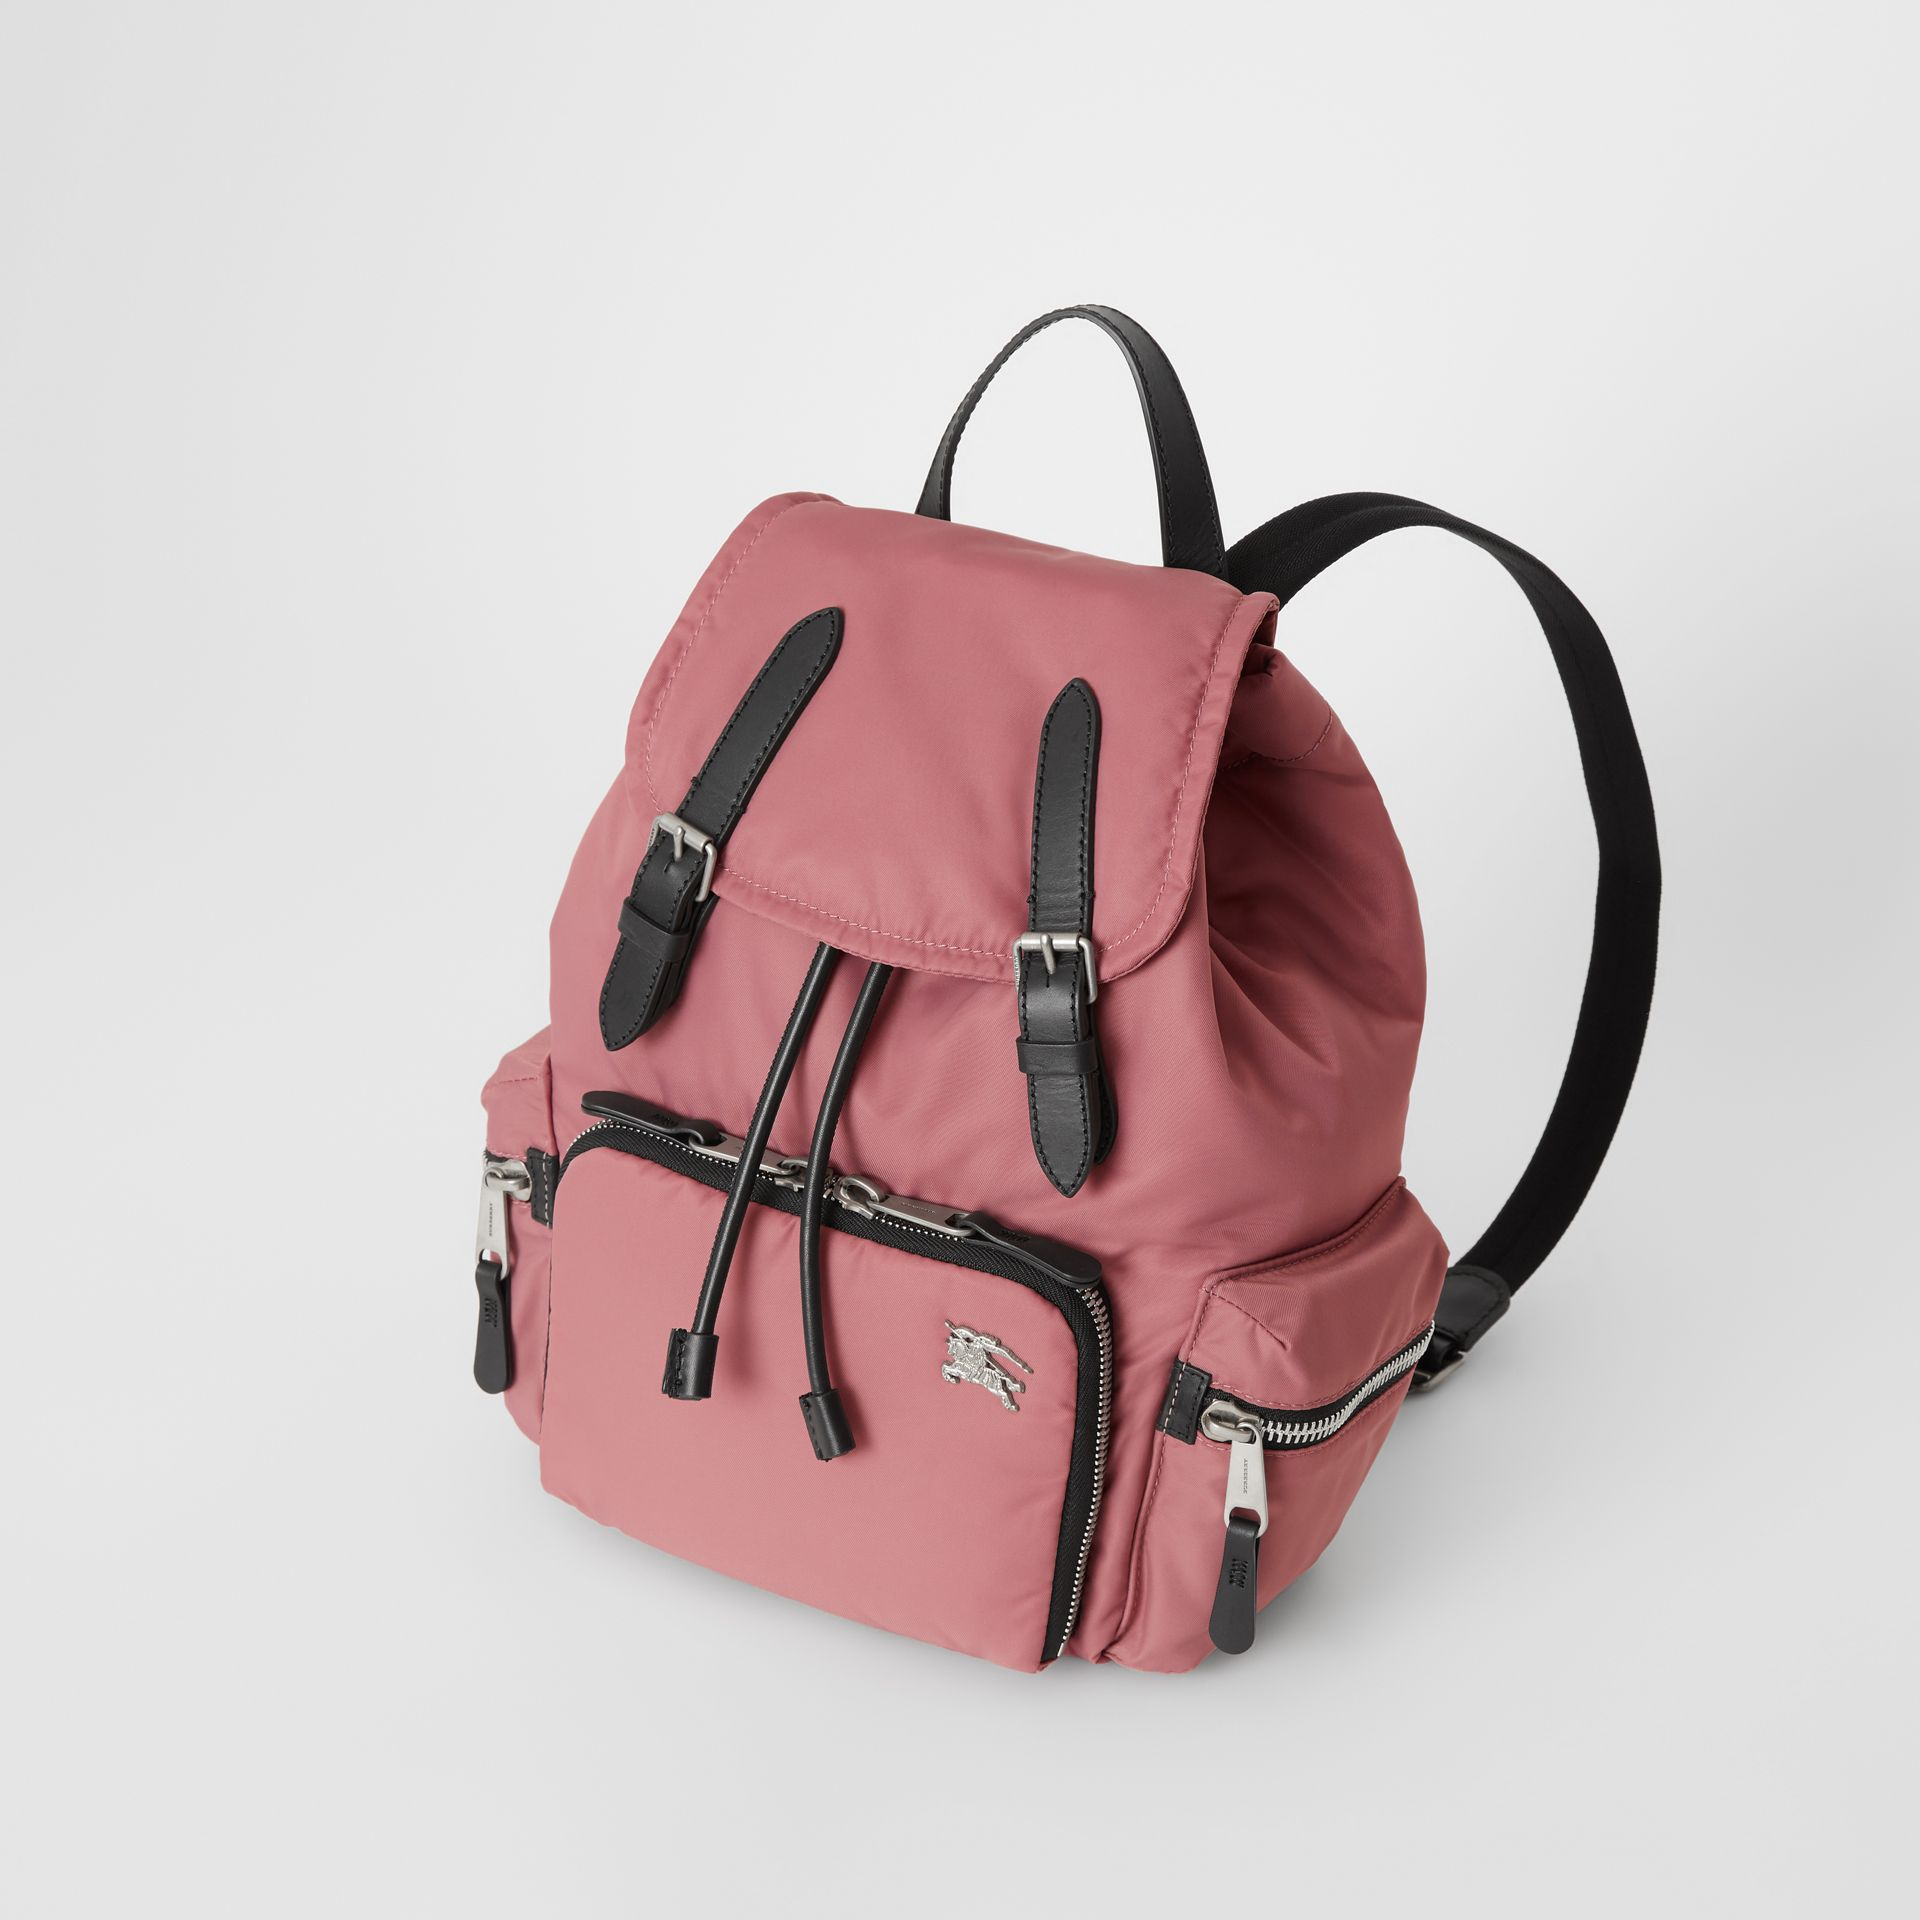 Sac The Rucksack moyen en nylon matelassé et cuir (Rose Mauve) - Femme | Burberry - photo de la galerie 2